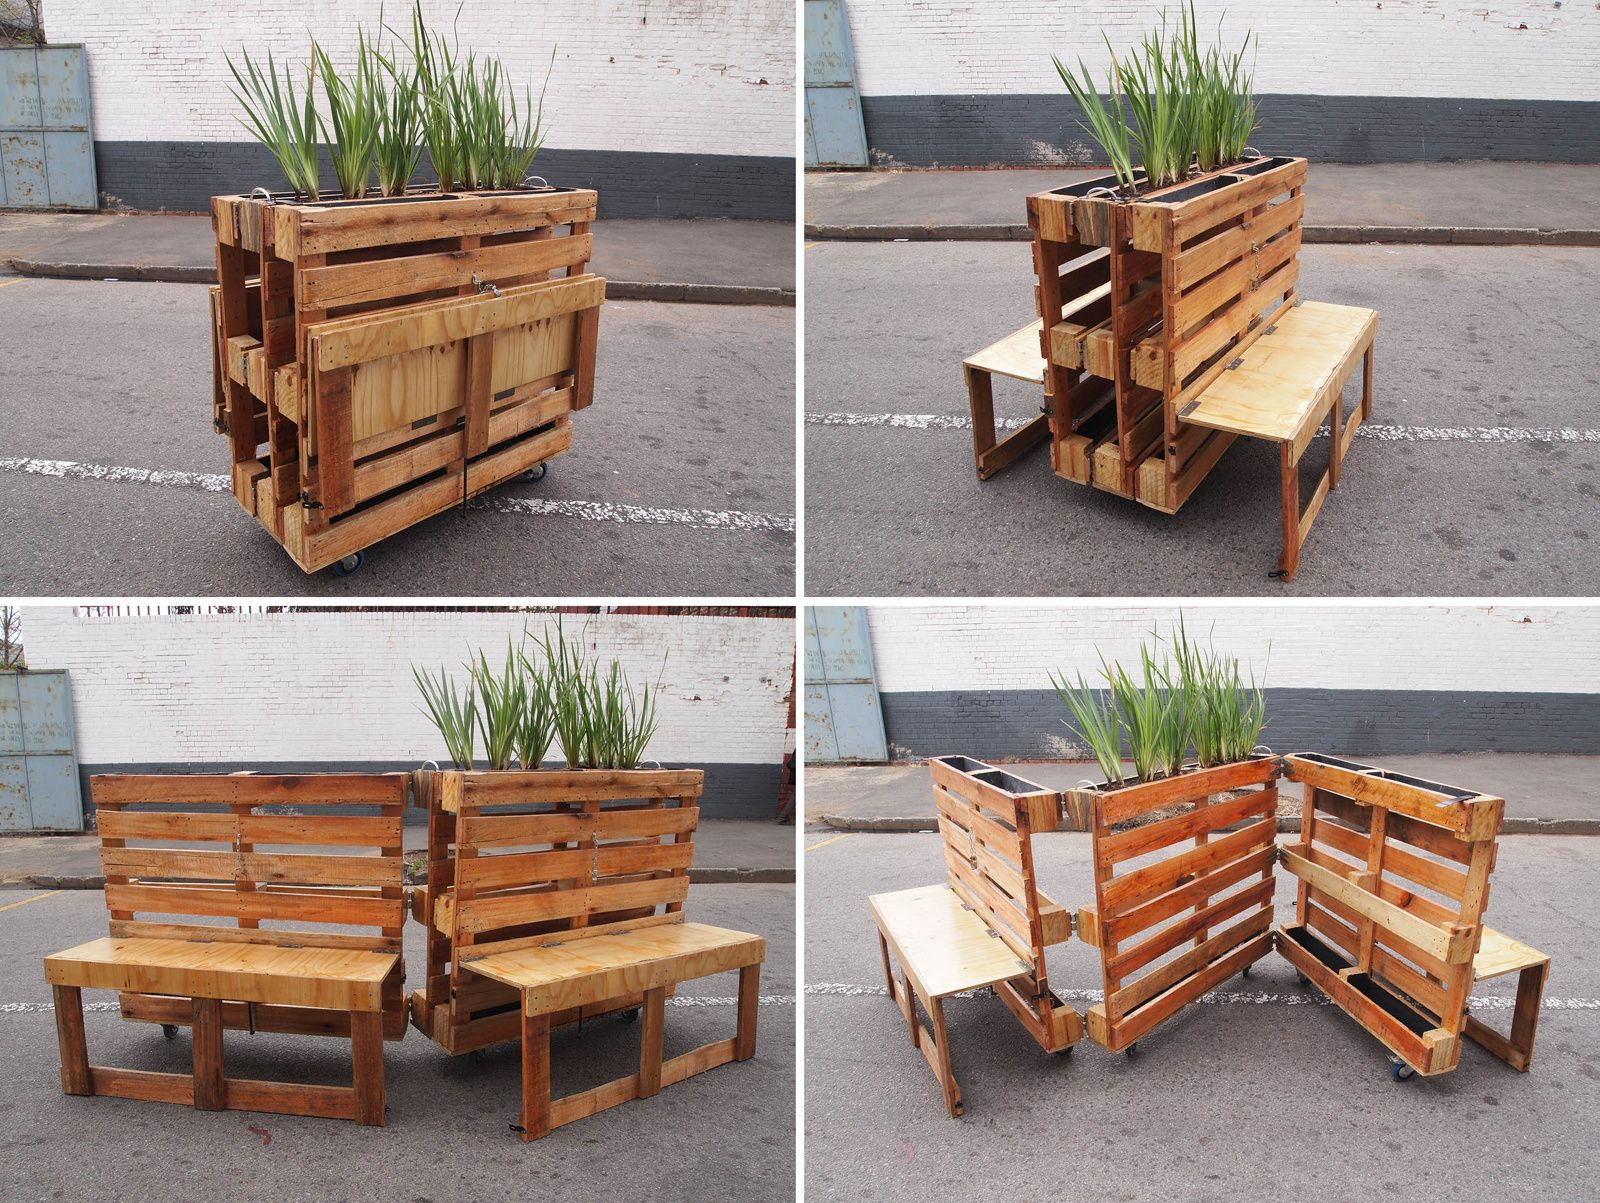 false bench wooden bottom id ferwodwhqqlkxyf crate